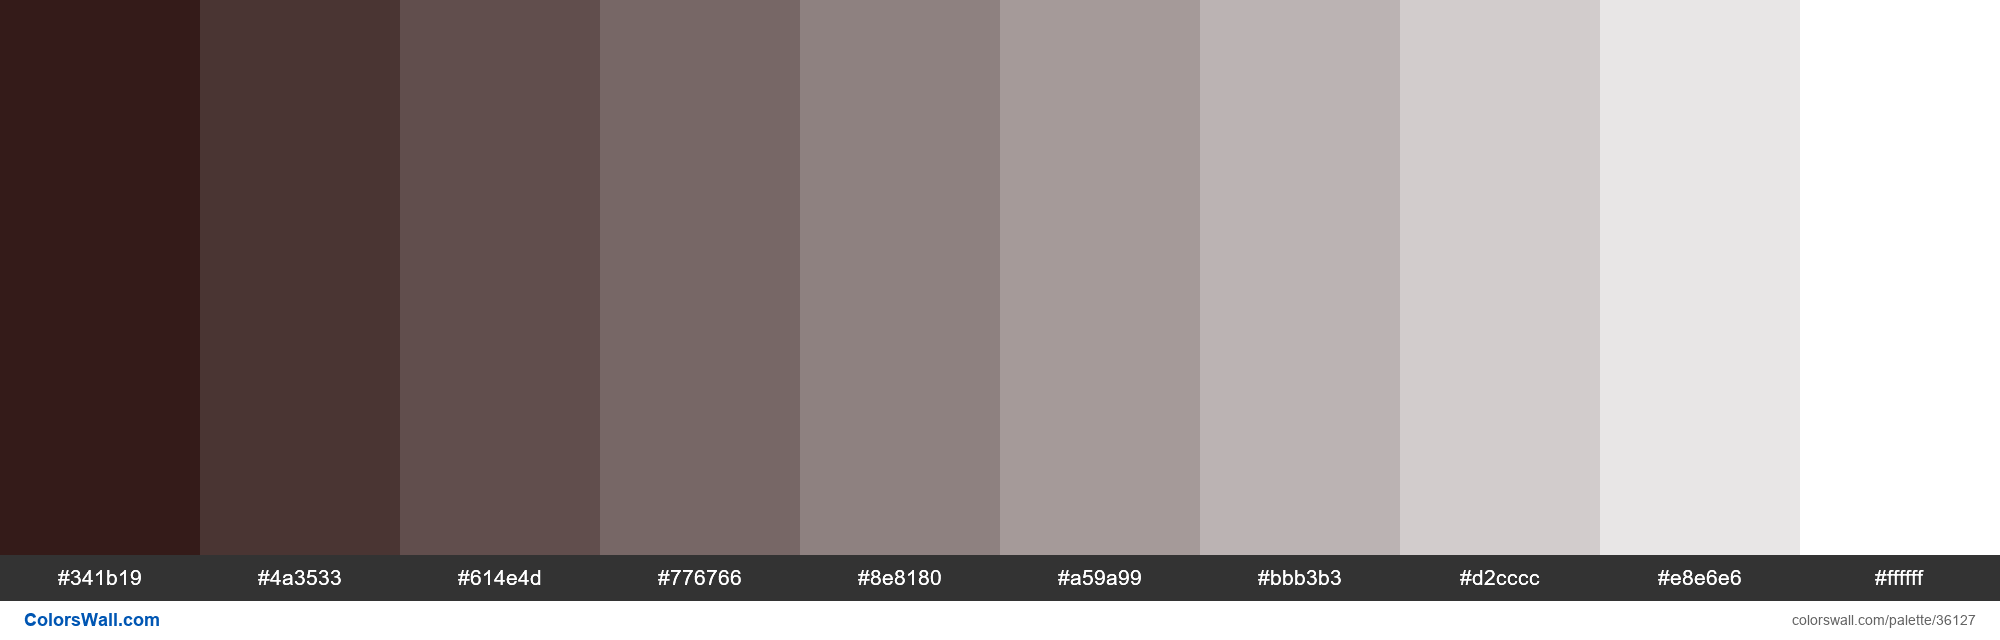 Tints XKCD Color very dark brown #1d0200 hex - #36127